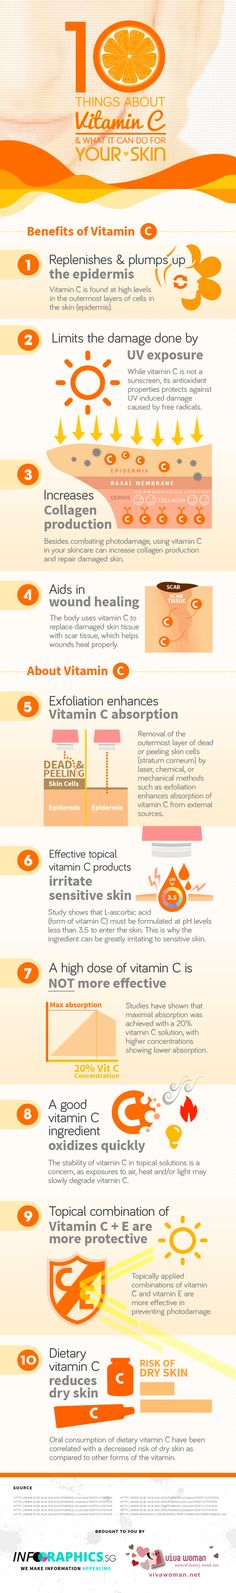 Infographic-10-Things-About-Vitamin-C